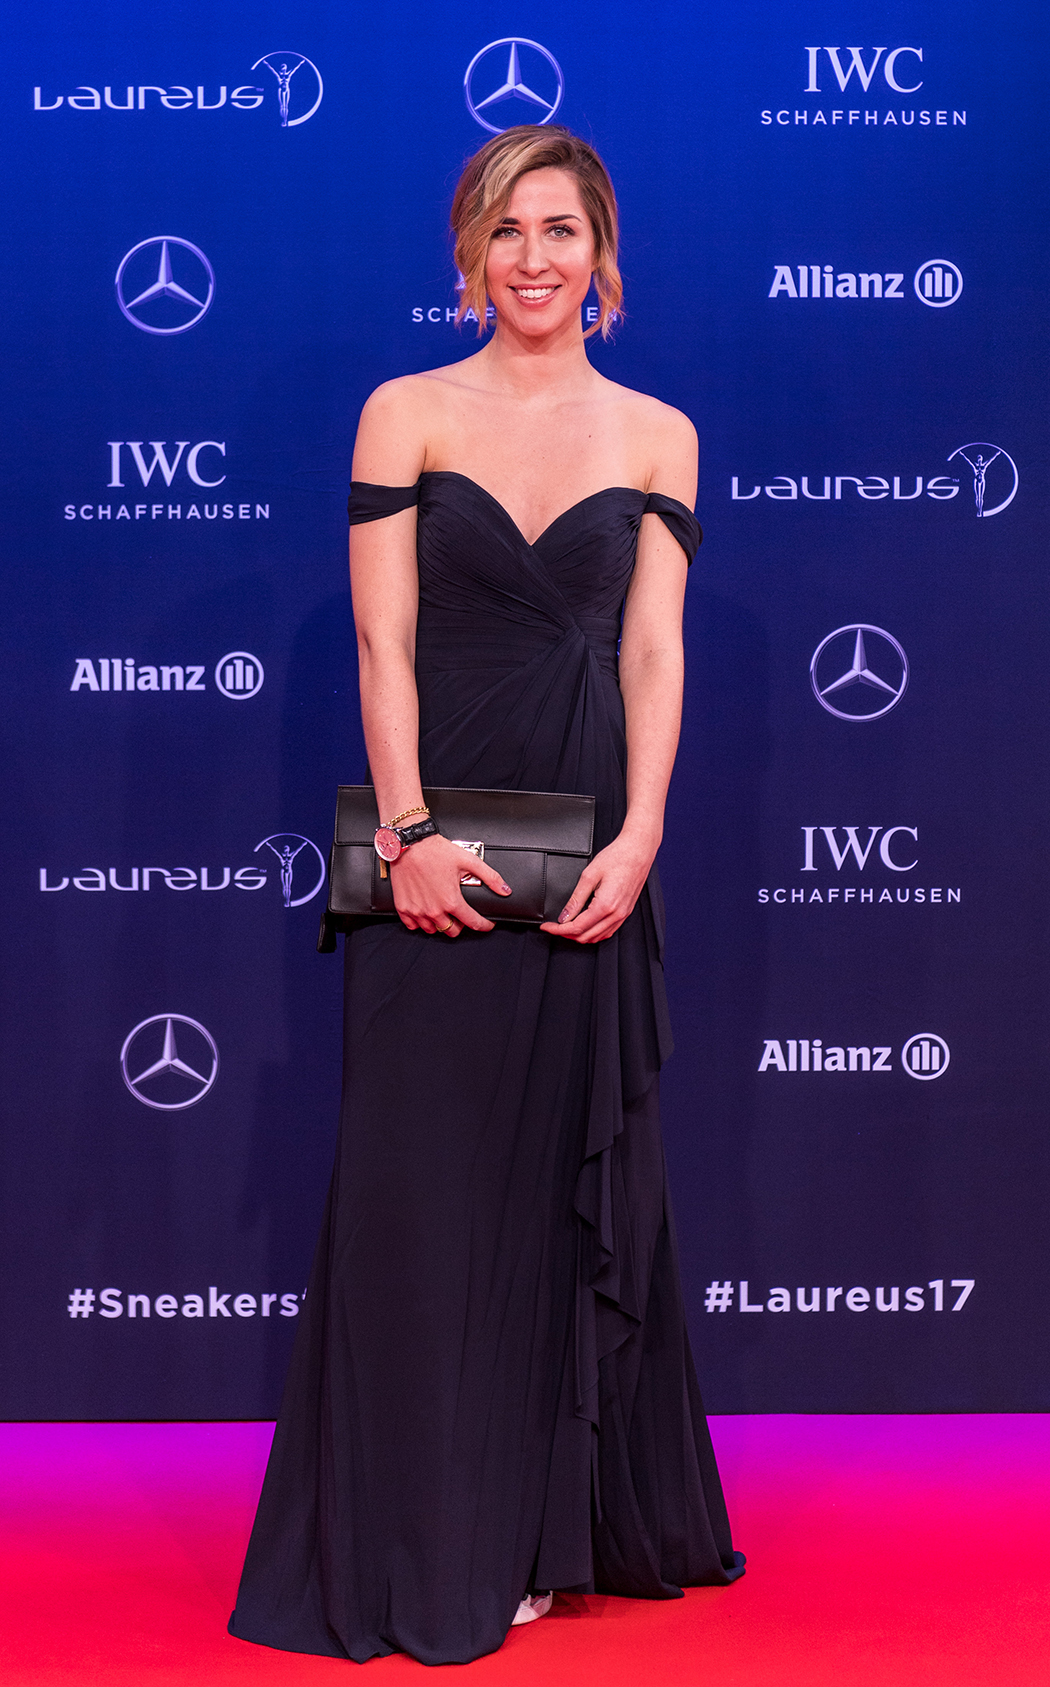 MONTE CARLO, MONACO - FEBRUARY 14: Linda Mutschlechner, fitness influencer, attends the 2017 Laureus World Sports Awards at the Salle des Etoiles, Sporting Monte Carlo on February 14, 2017 in Monaco, Monaco. The most outstanding athletes of the past year were honoured at the Laureus World Sports Awards 2017. (Photo by Lukas Schulze/IWC Schaffhausen via Getty Images )